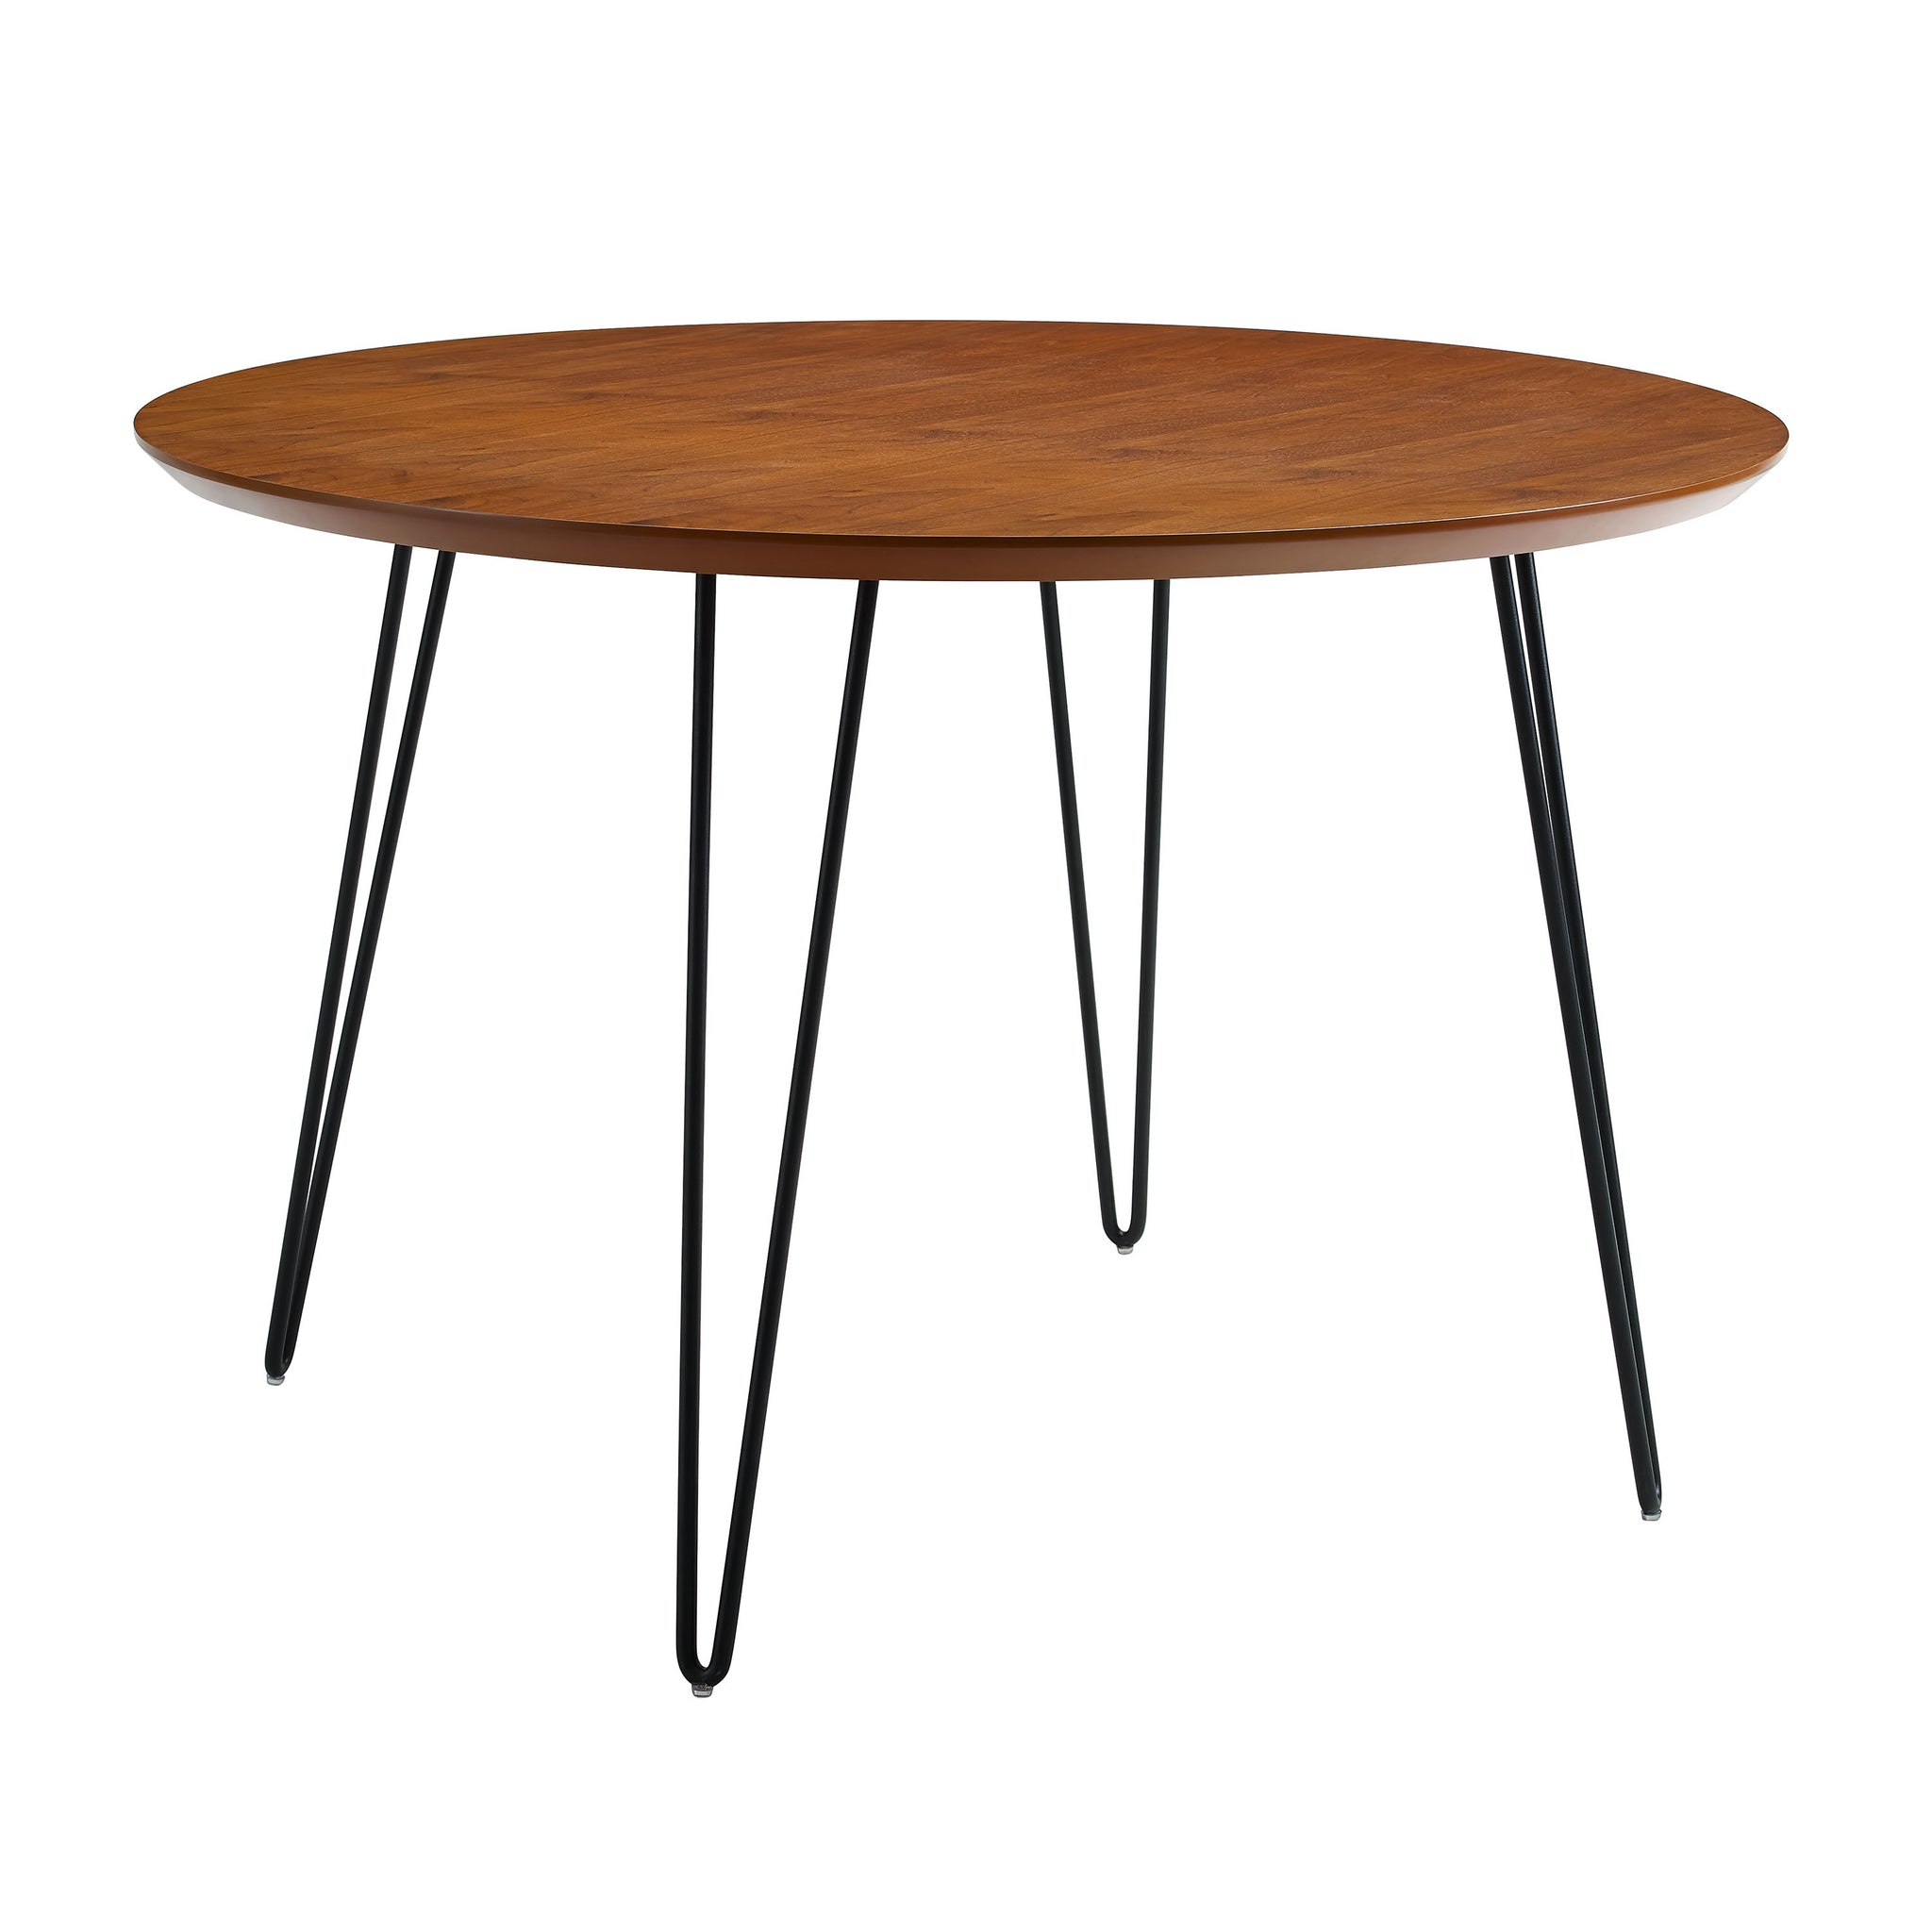 "46"" Round Hairpin Leg Dining Table - Walnut"